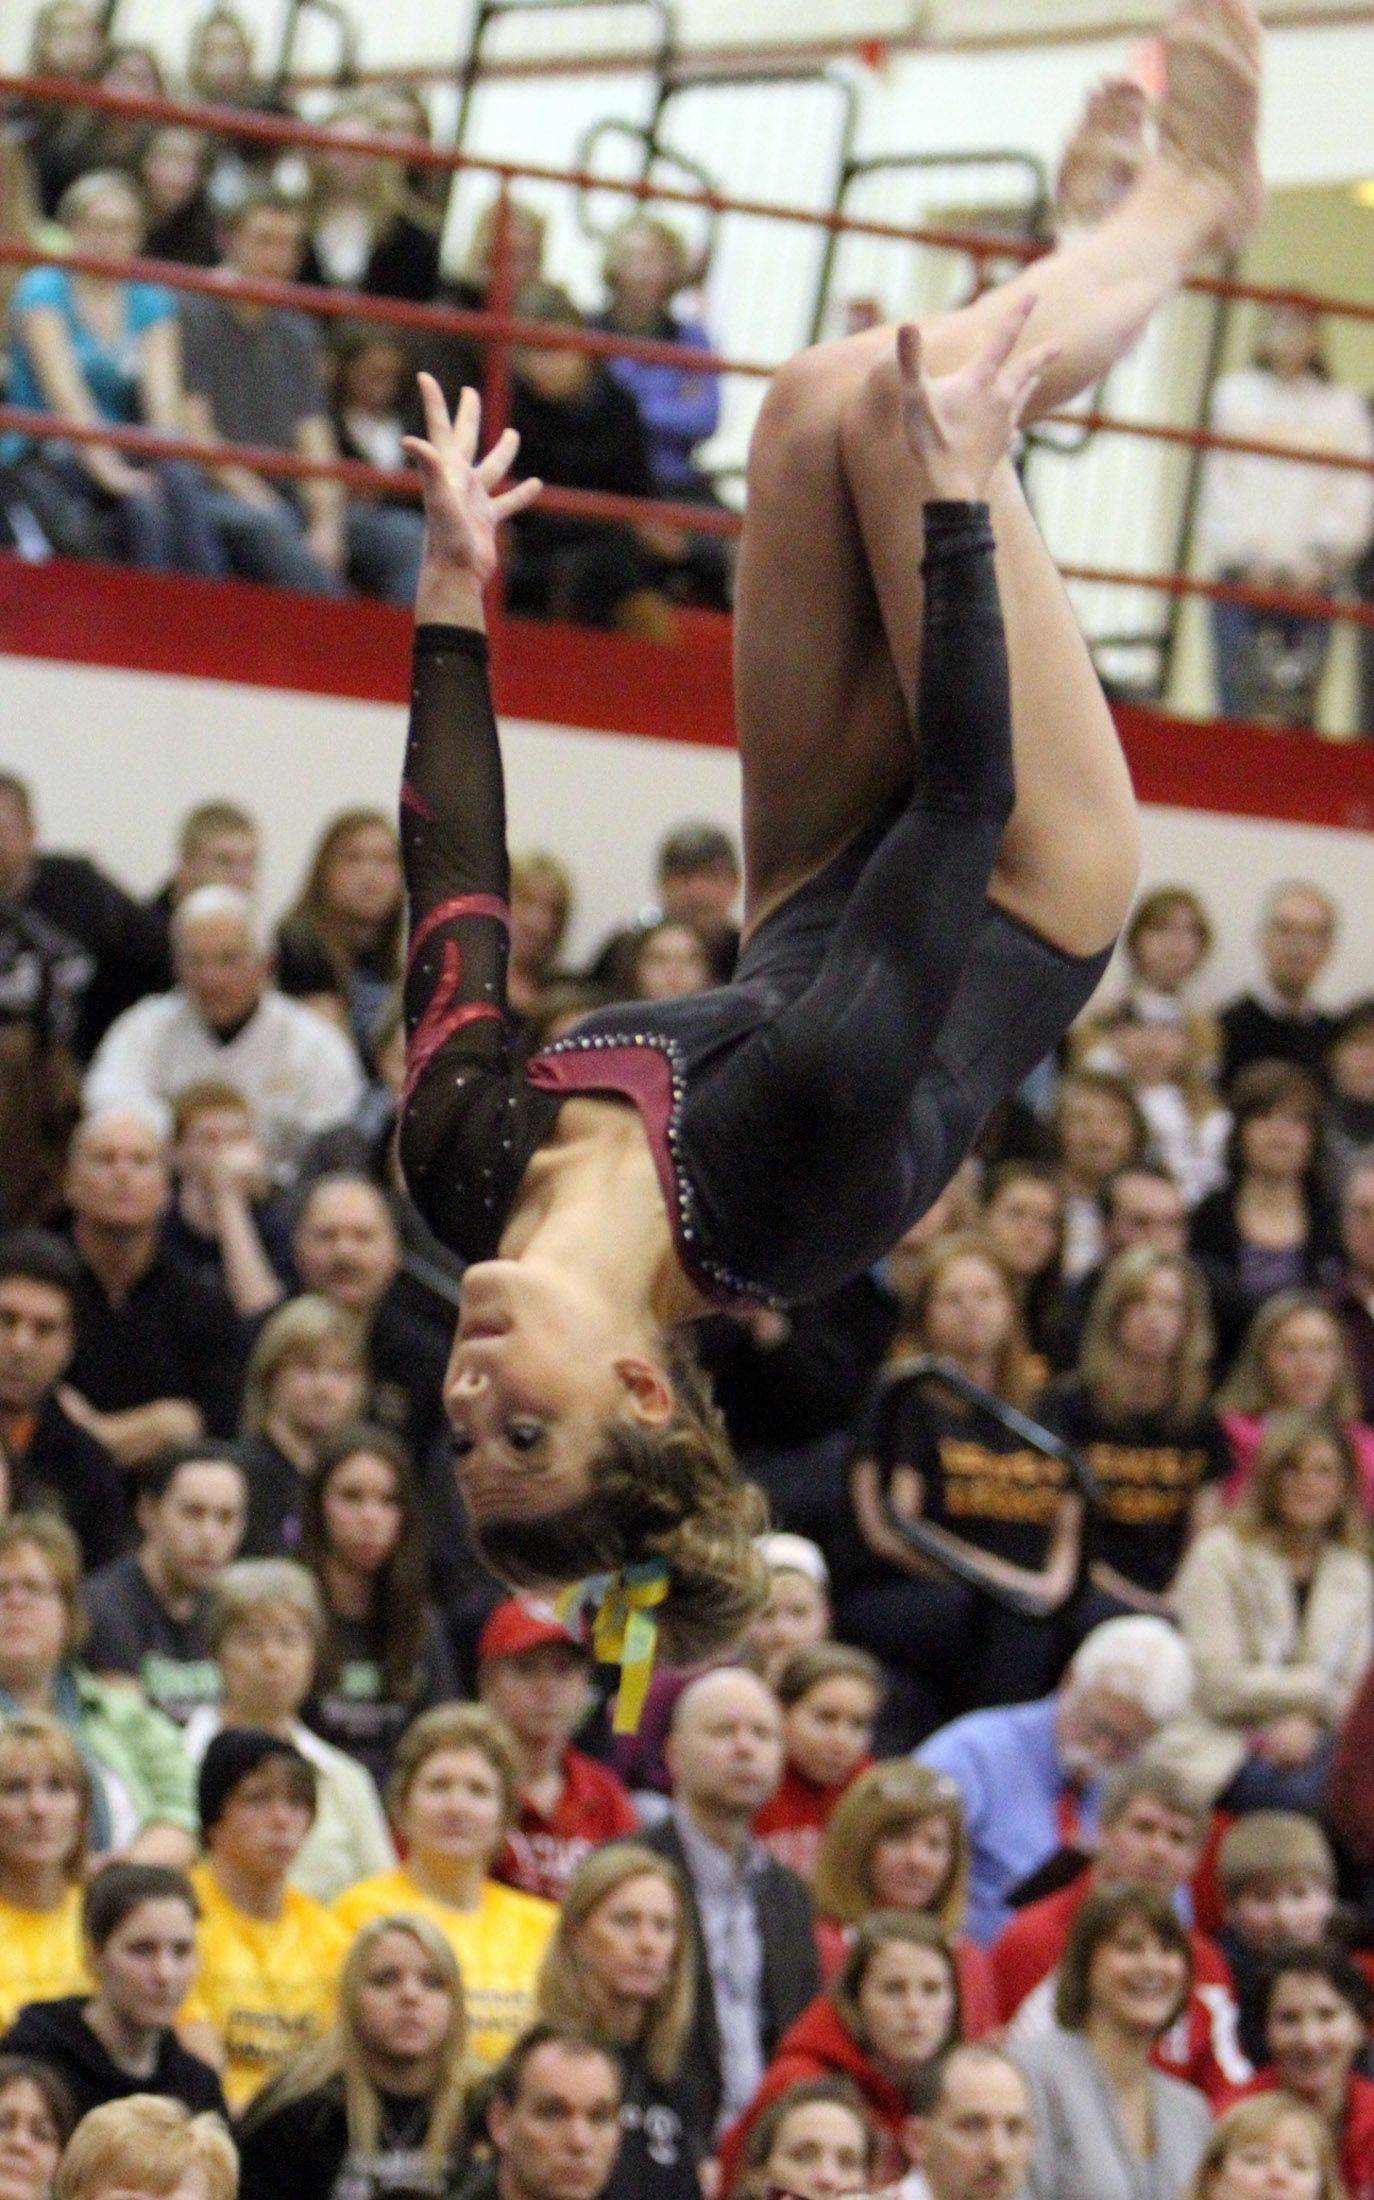 Schaumburg�s Brooke Shimon competes on the balance beam at the IHSA state gymnastics finals at Palatine on Saturday. Shimon finished third after earning a score of 9.55.